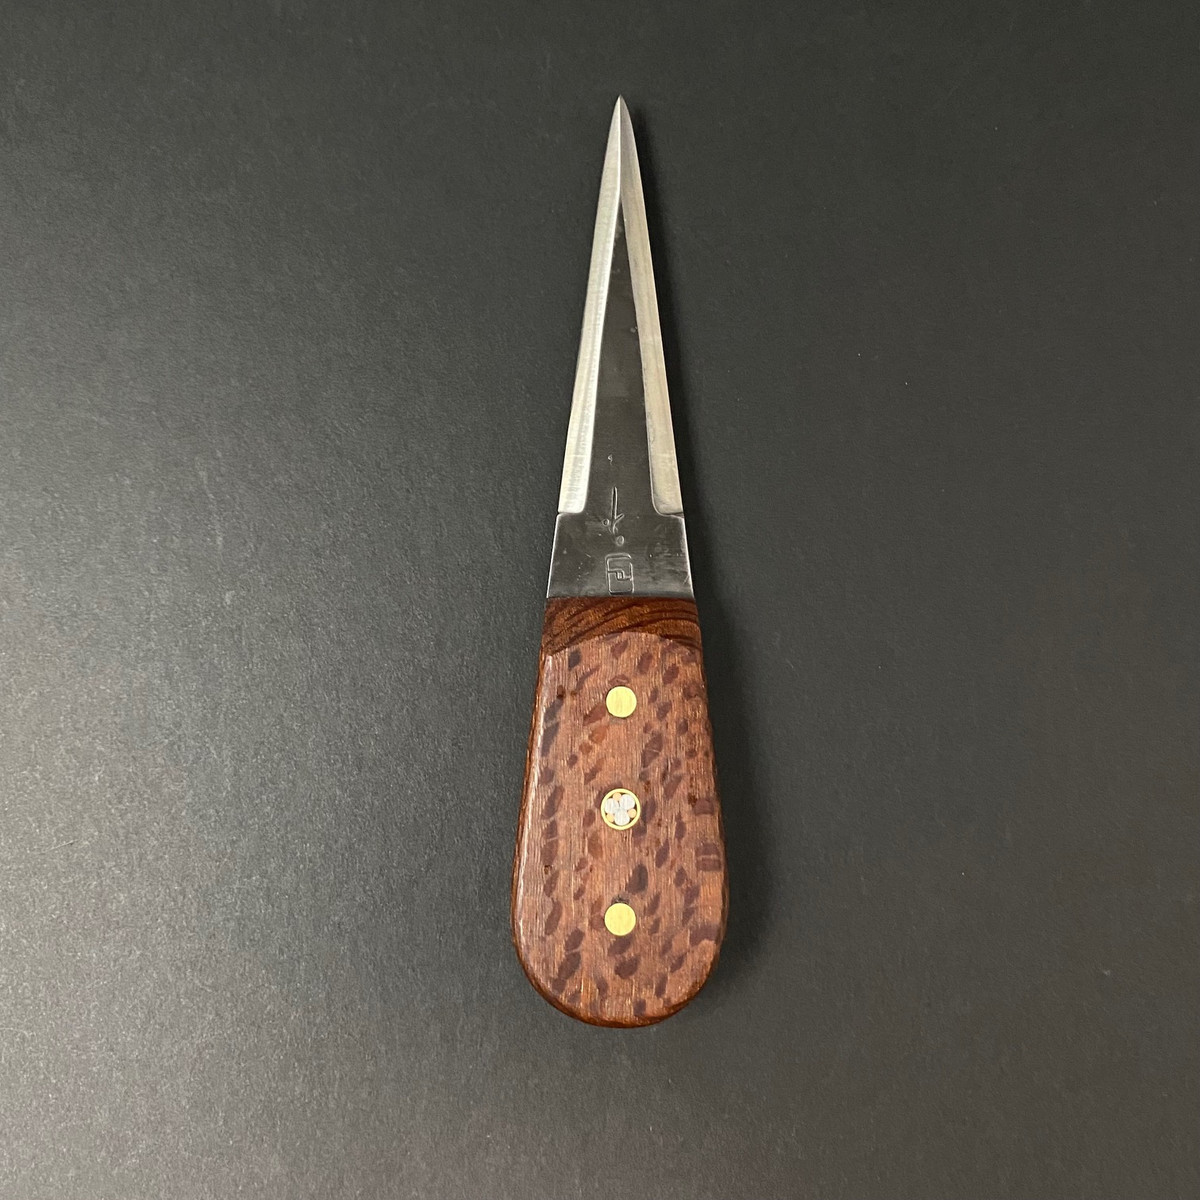 Spathis Forge   Oyster Shucker   Lacewood